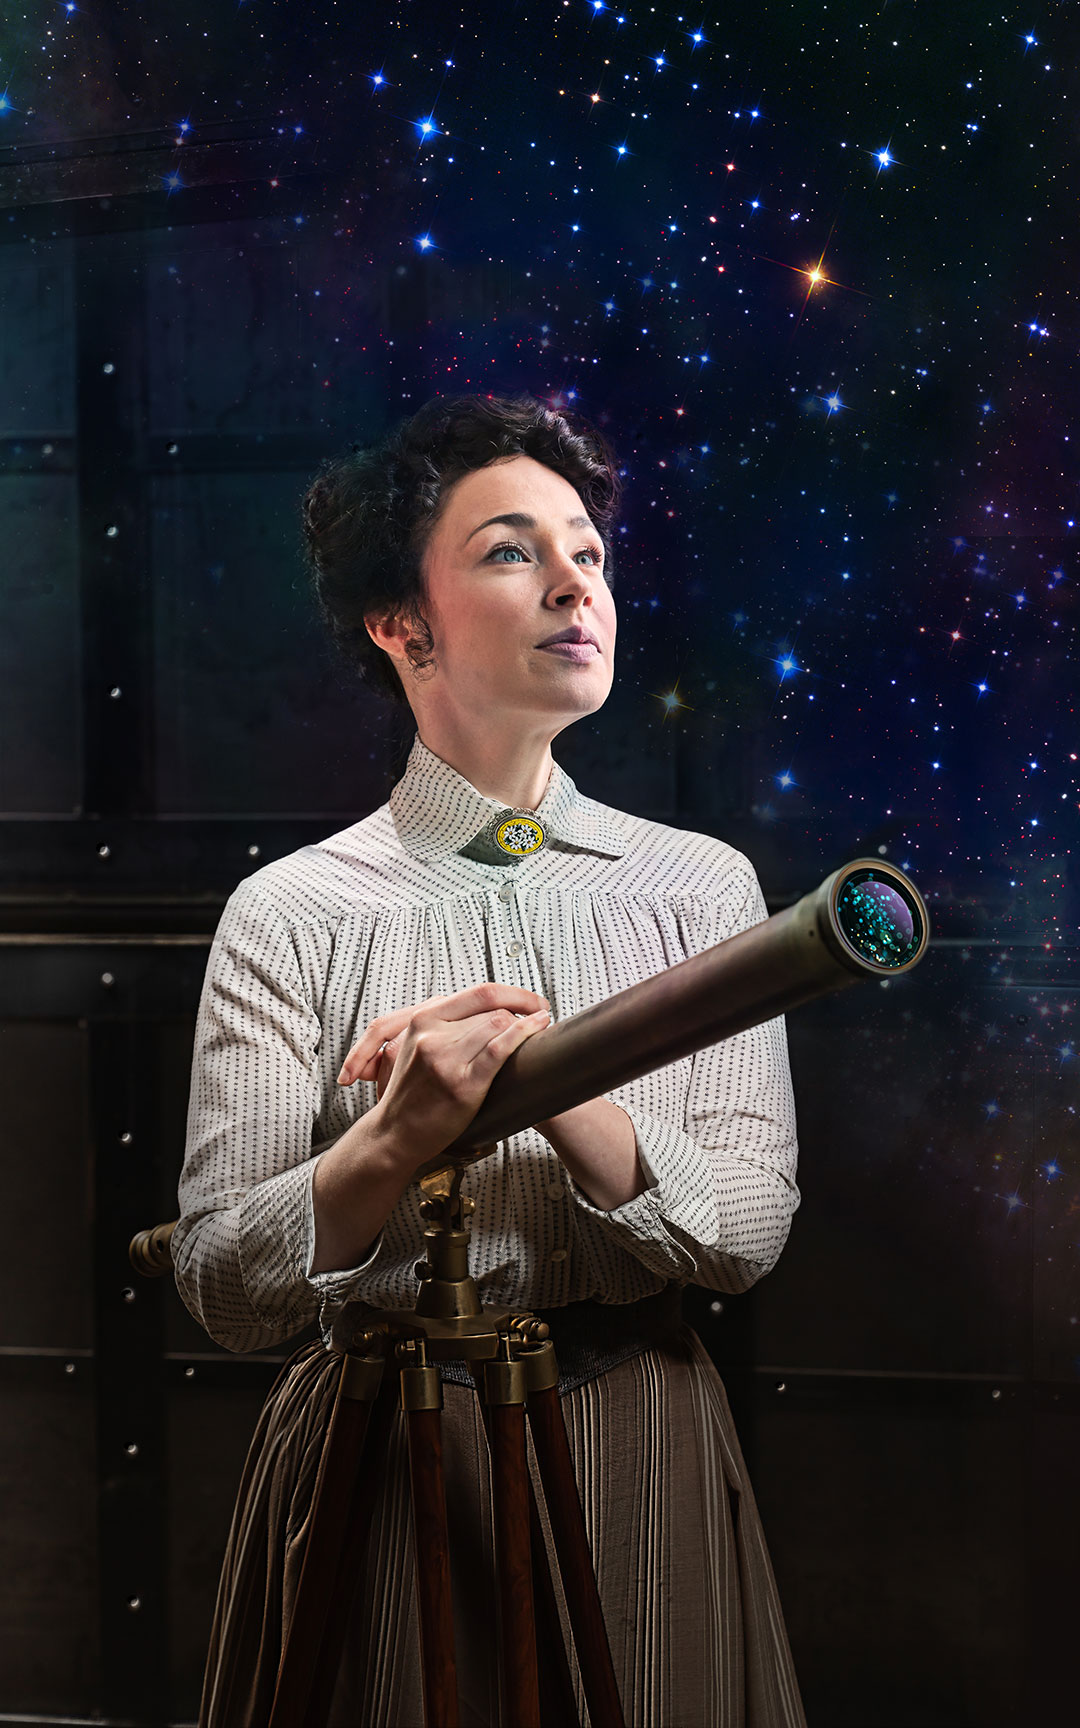 A woman wearing a white, collared Victorian blouse and high-waisted skirt stands behind a telescope looking wistfully into the sky.